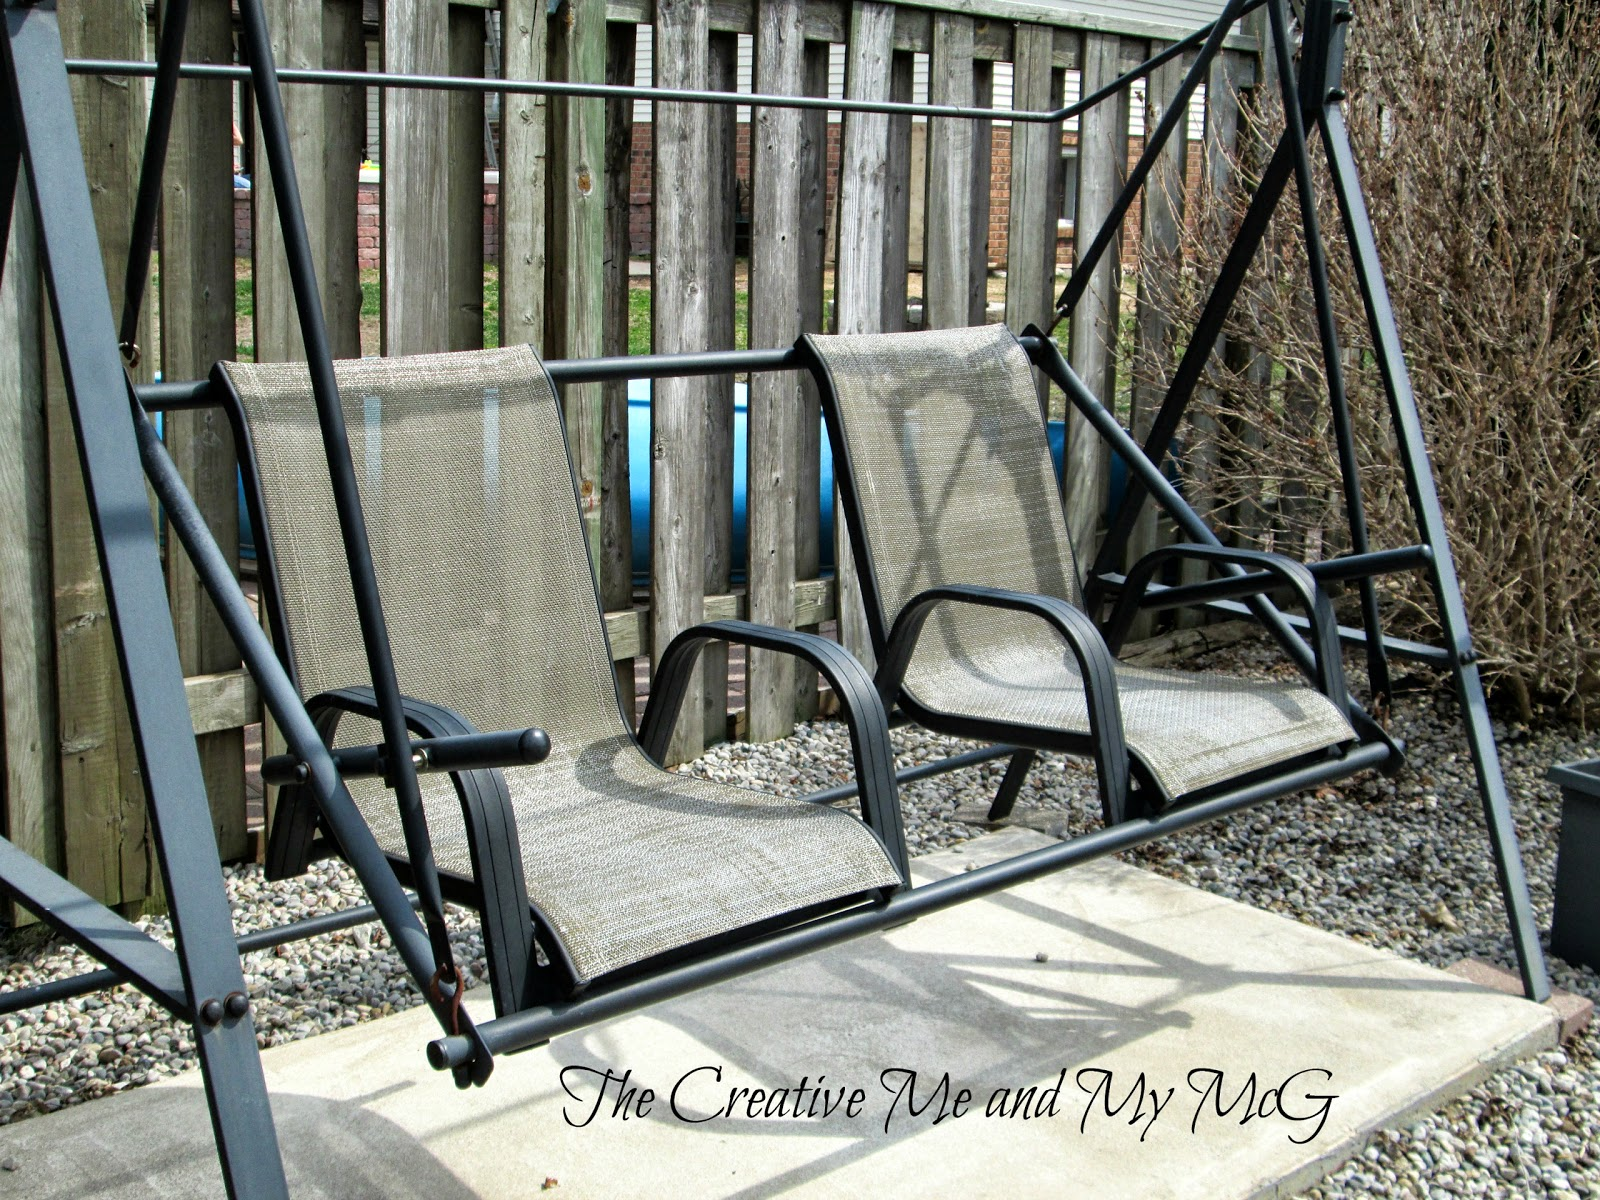 The Creative Me And My McG: Upcycling Patio Chairs To A Garden Swing Seat